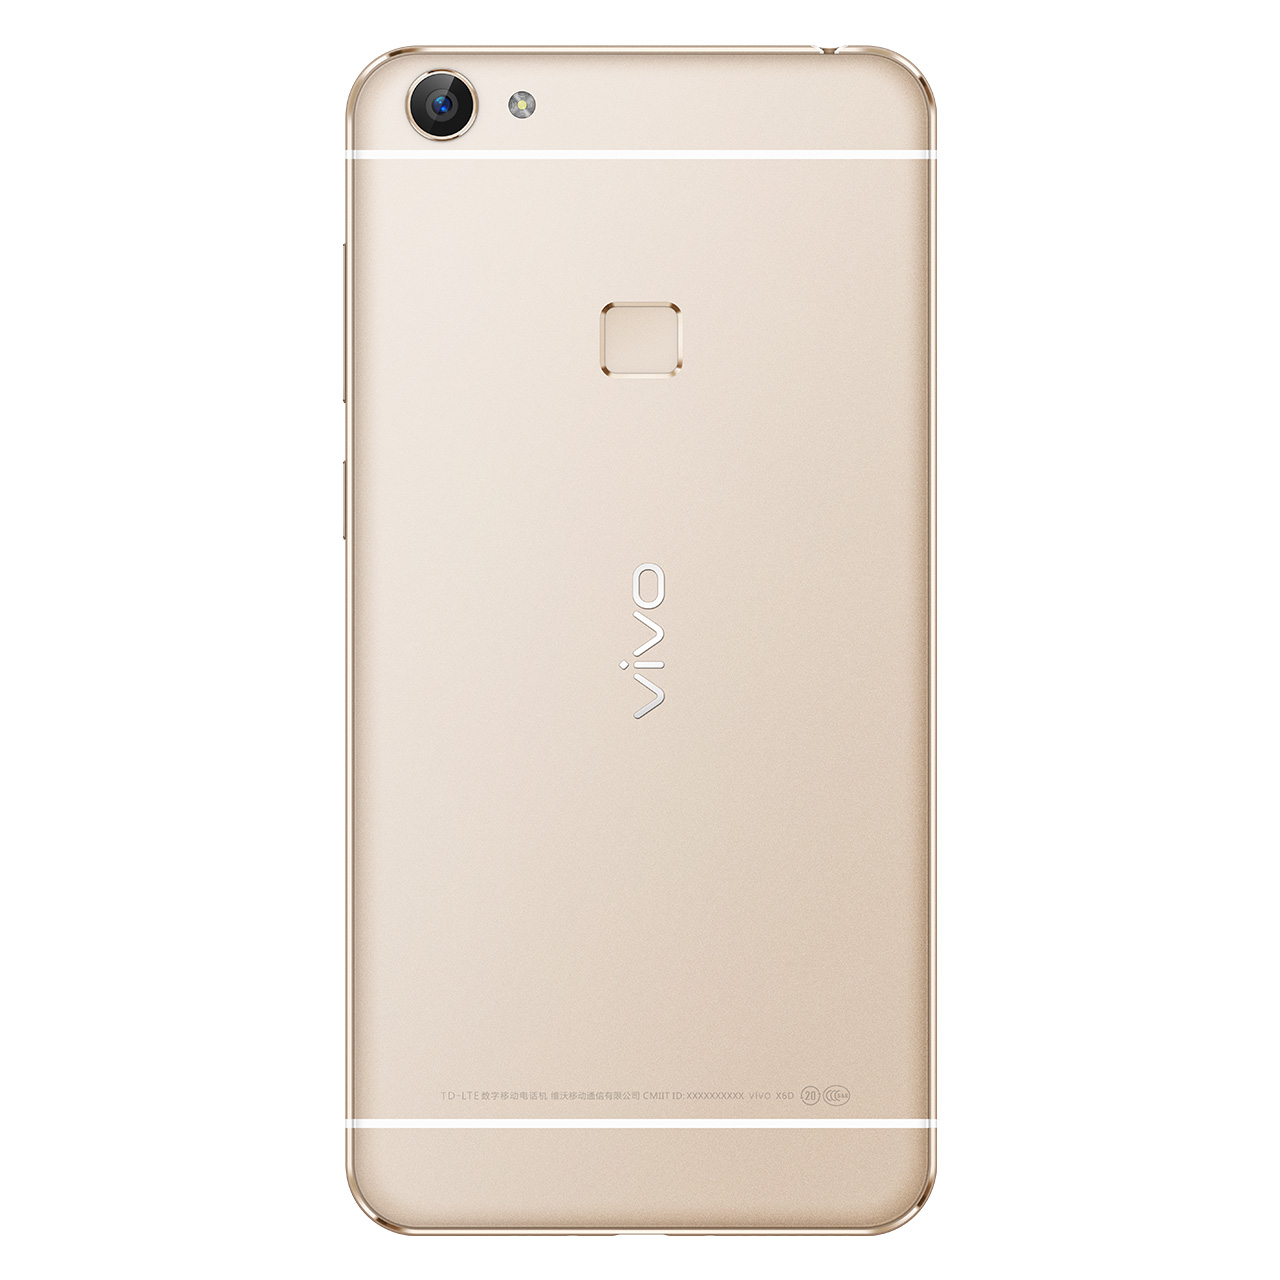 vivo-x6s-x6s-plus-launching-readme